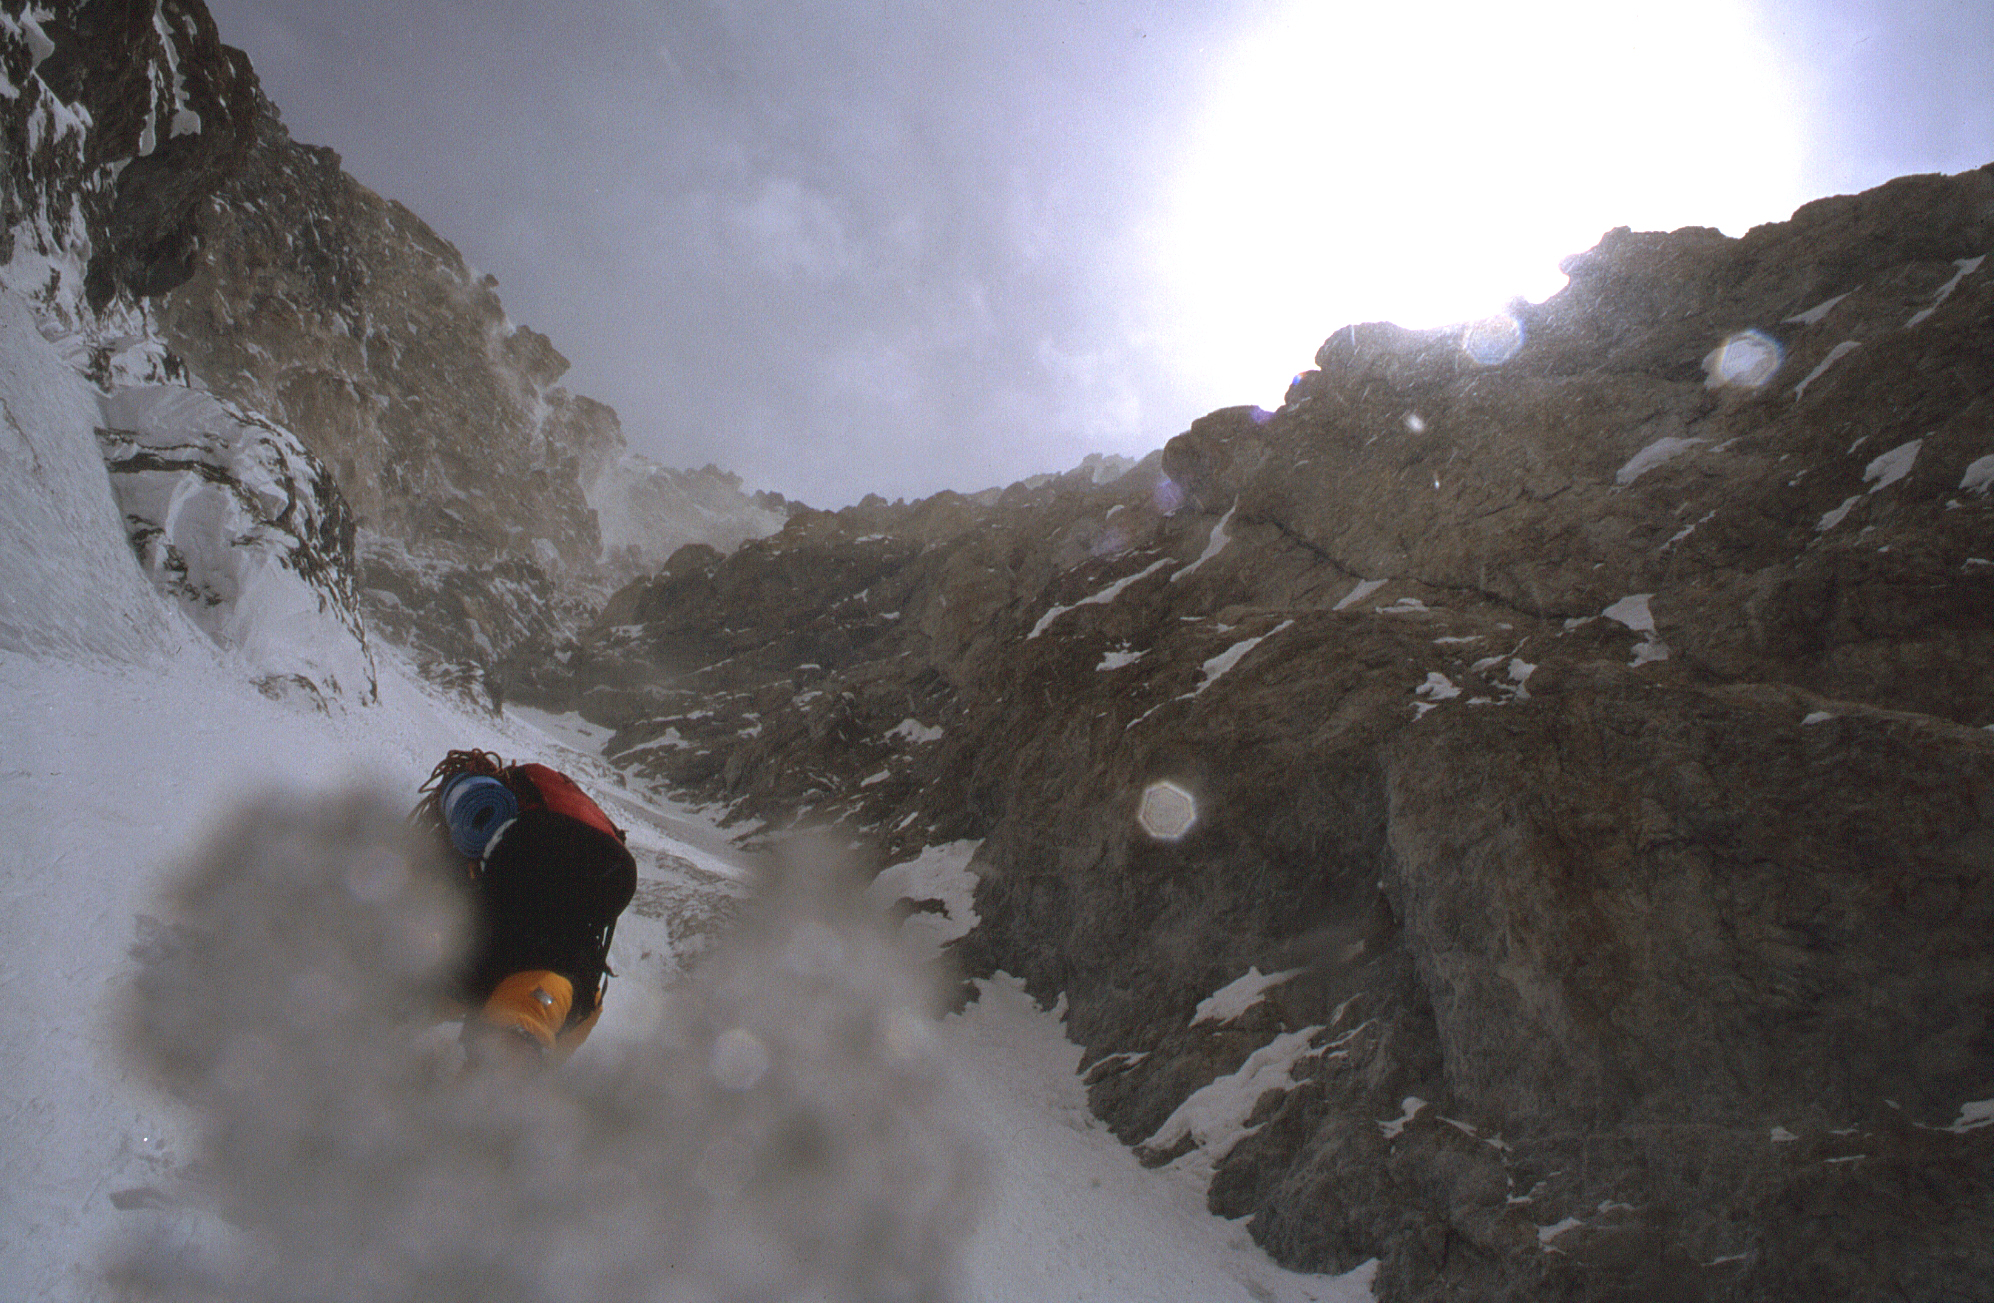 Athol at the top of the first couloir in worsening weather.